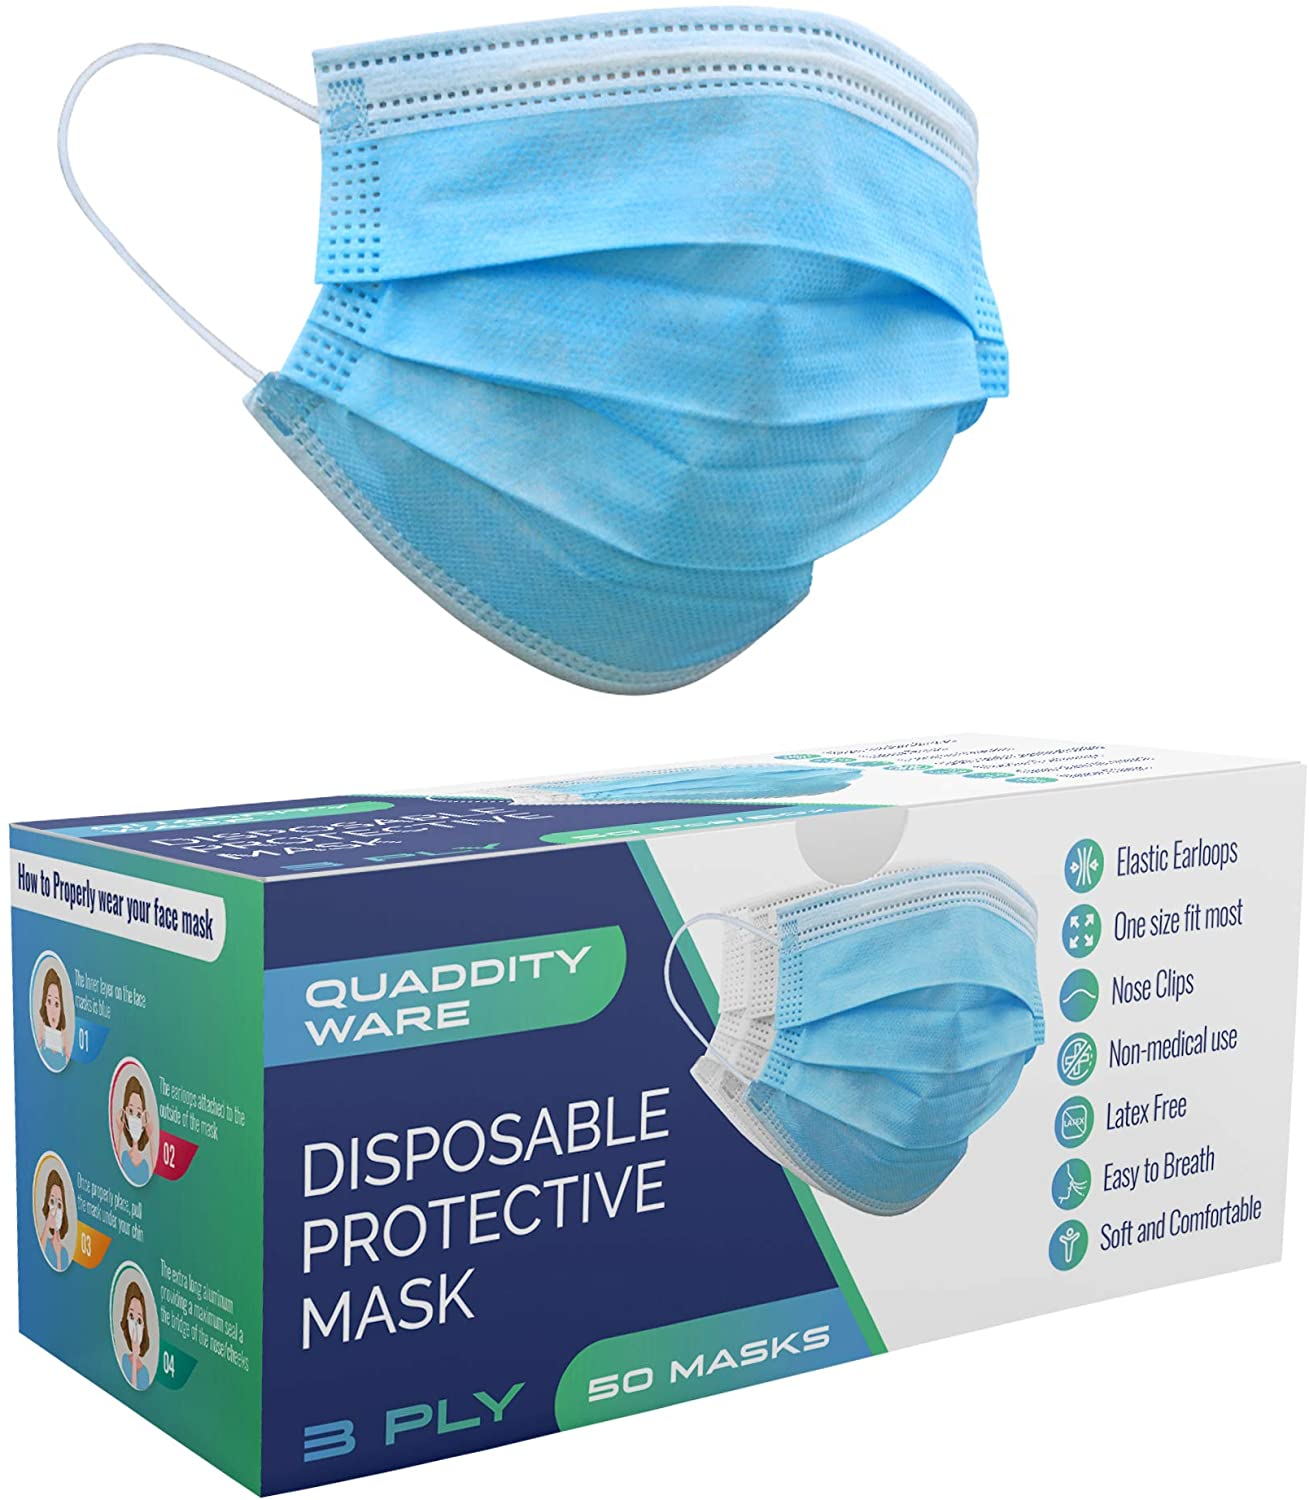 3-Layer Disposable Protective Face Masks with Nose Clip and Ear Loops (50)